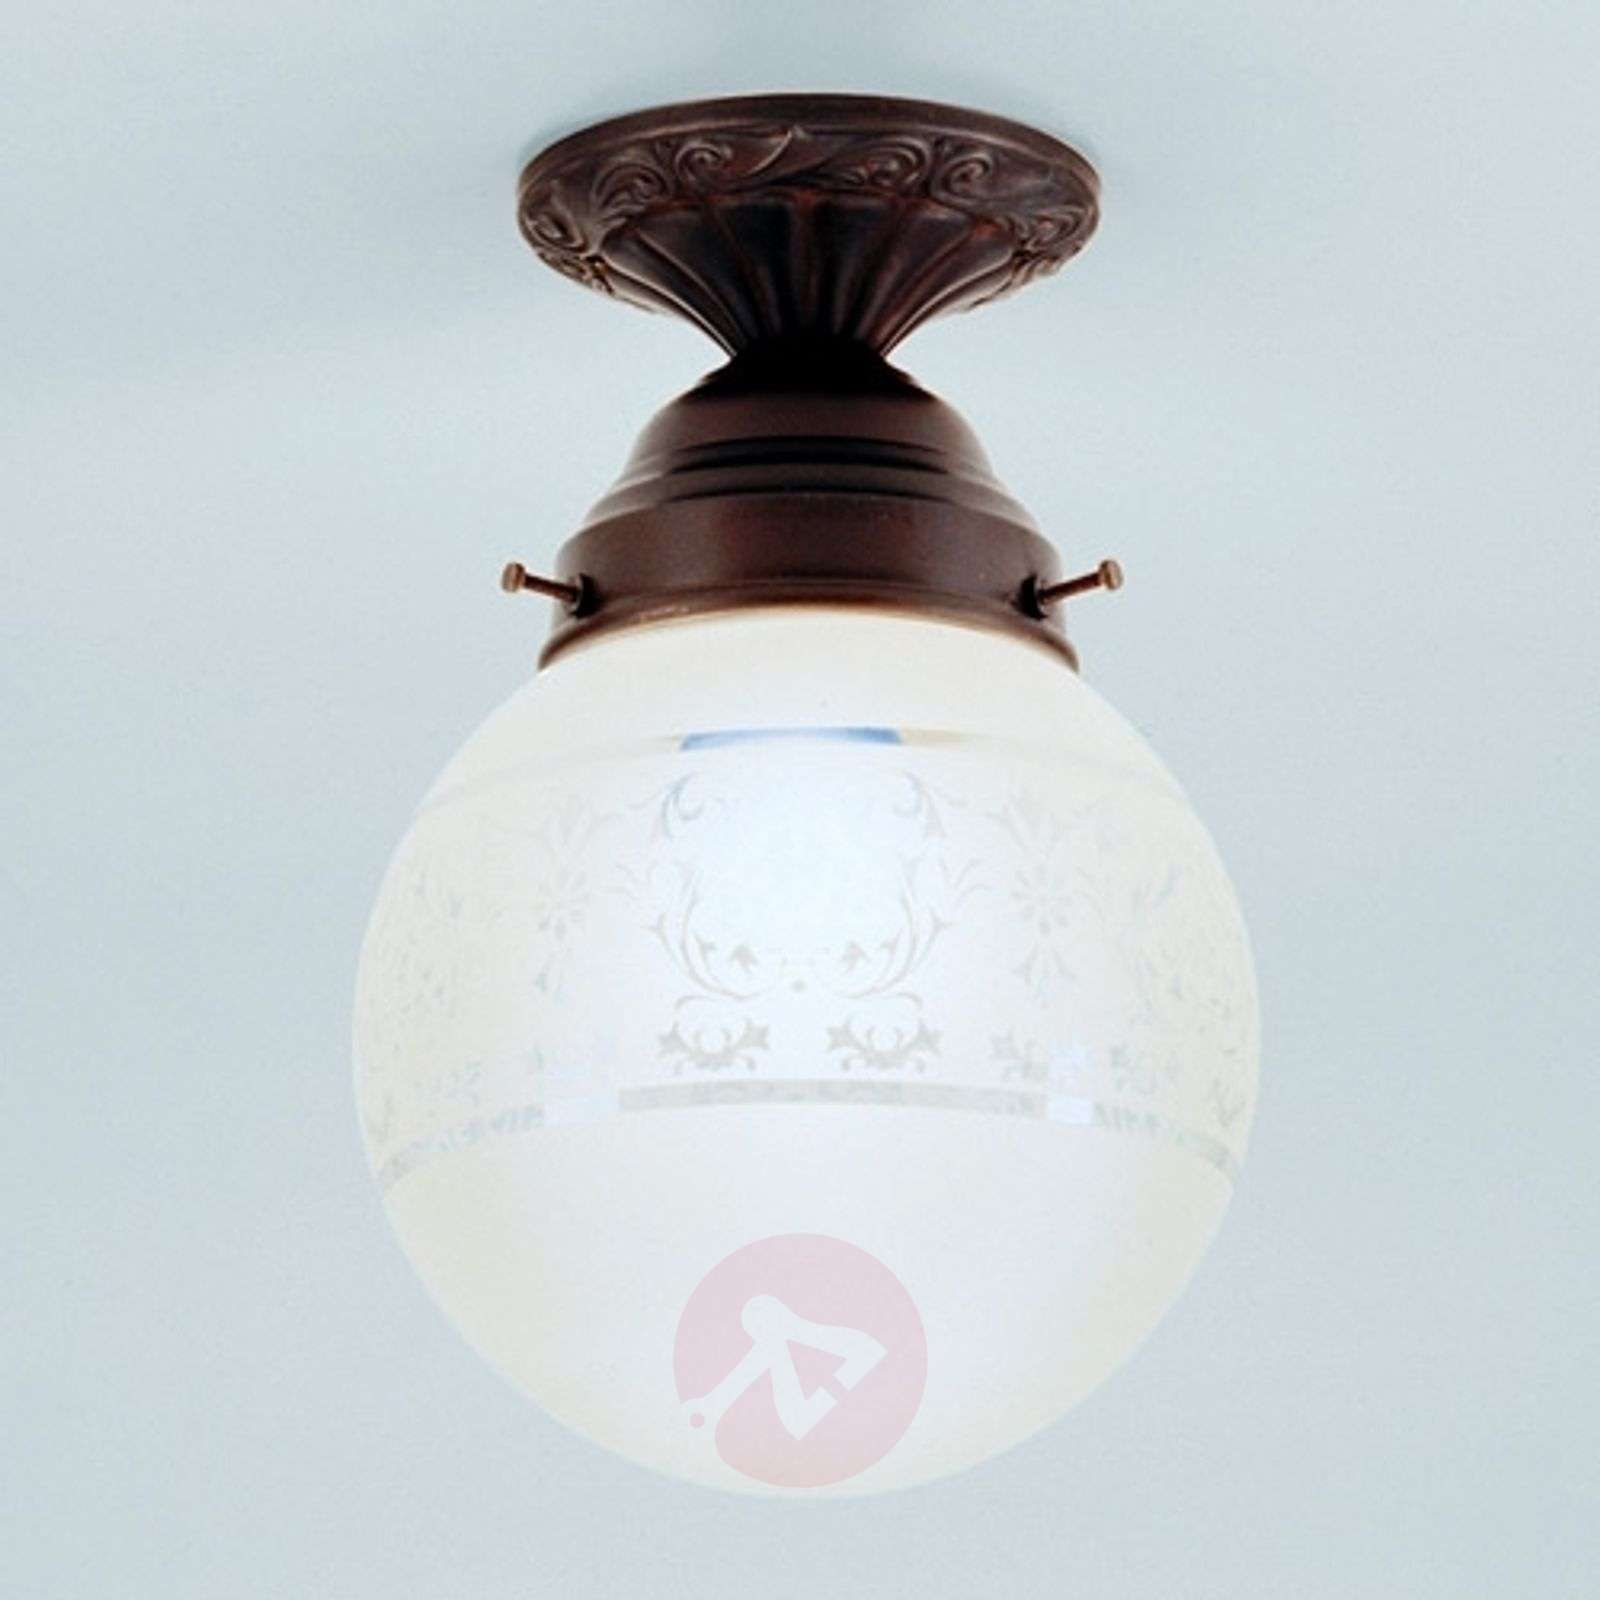 Lampa sufitowa Jack made in Germany-1542090-01